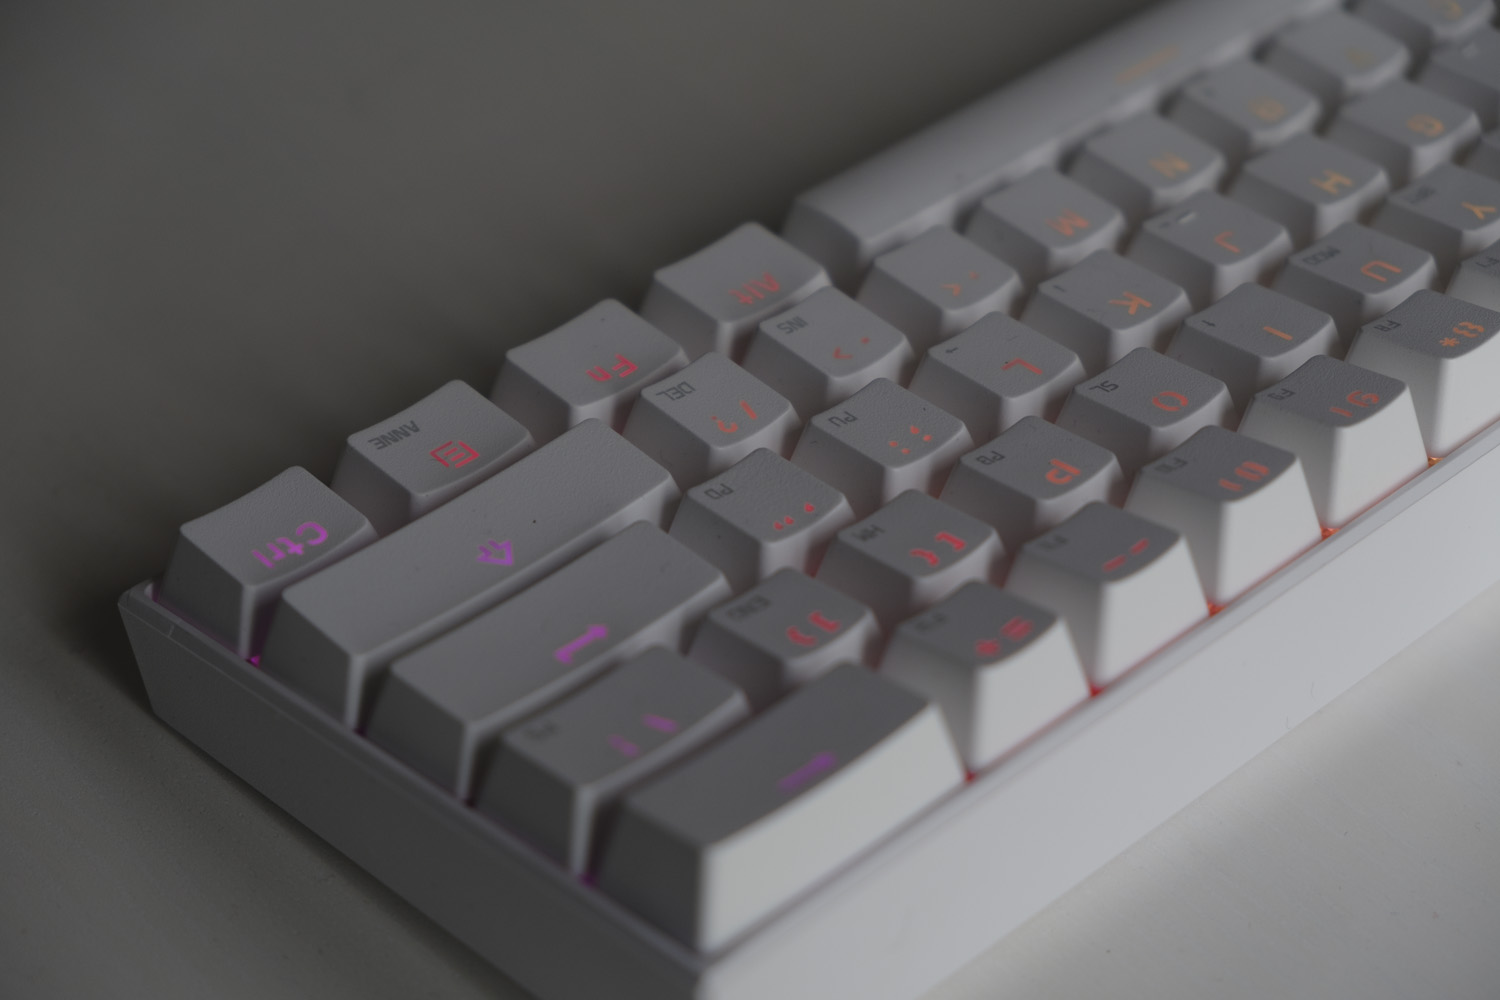 Obins anne pro review the best 60 keyboard ive ever used the benefits of the 60 form factor is that you get a much smaller and lighter keyboard which fits well with its bluetooth capabilities buycottarizona Image collections